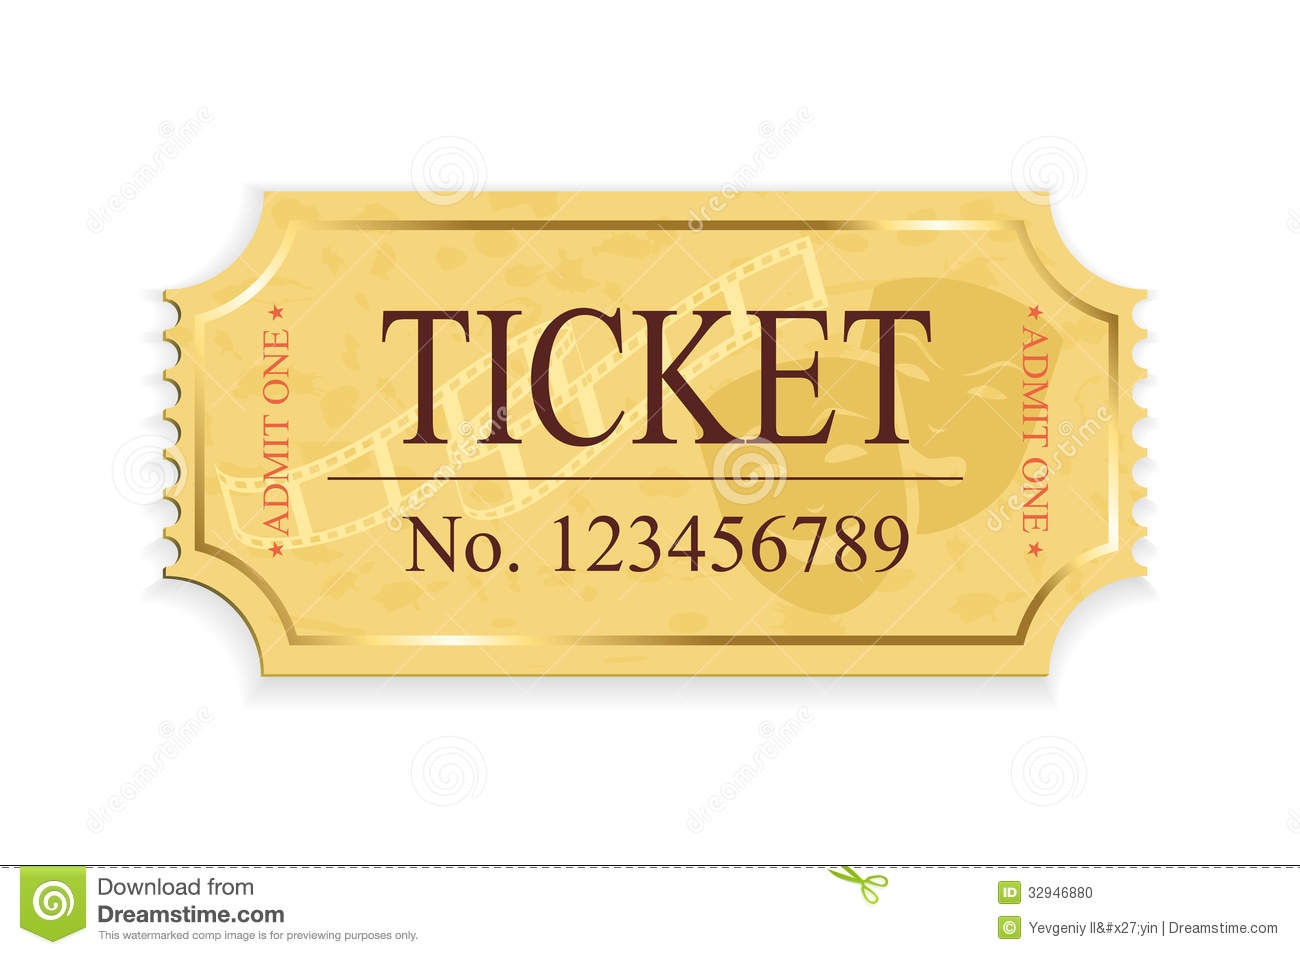 Old cinema ticket isolated on a white background, illustration.